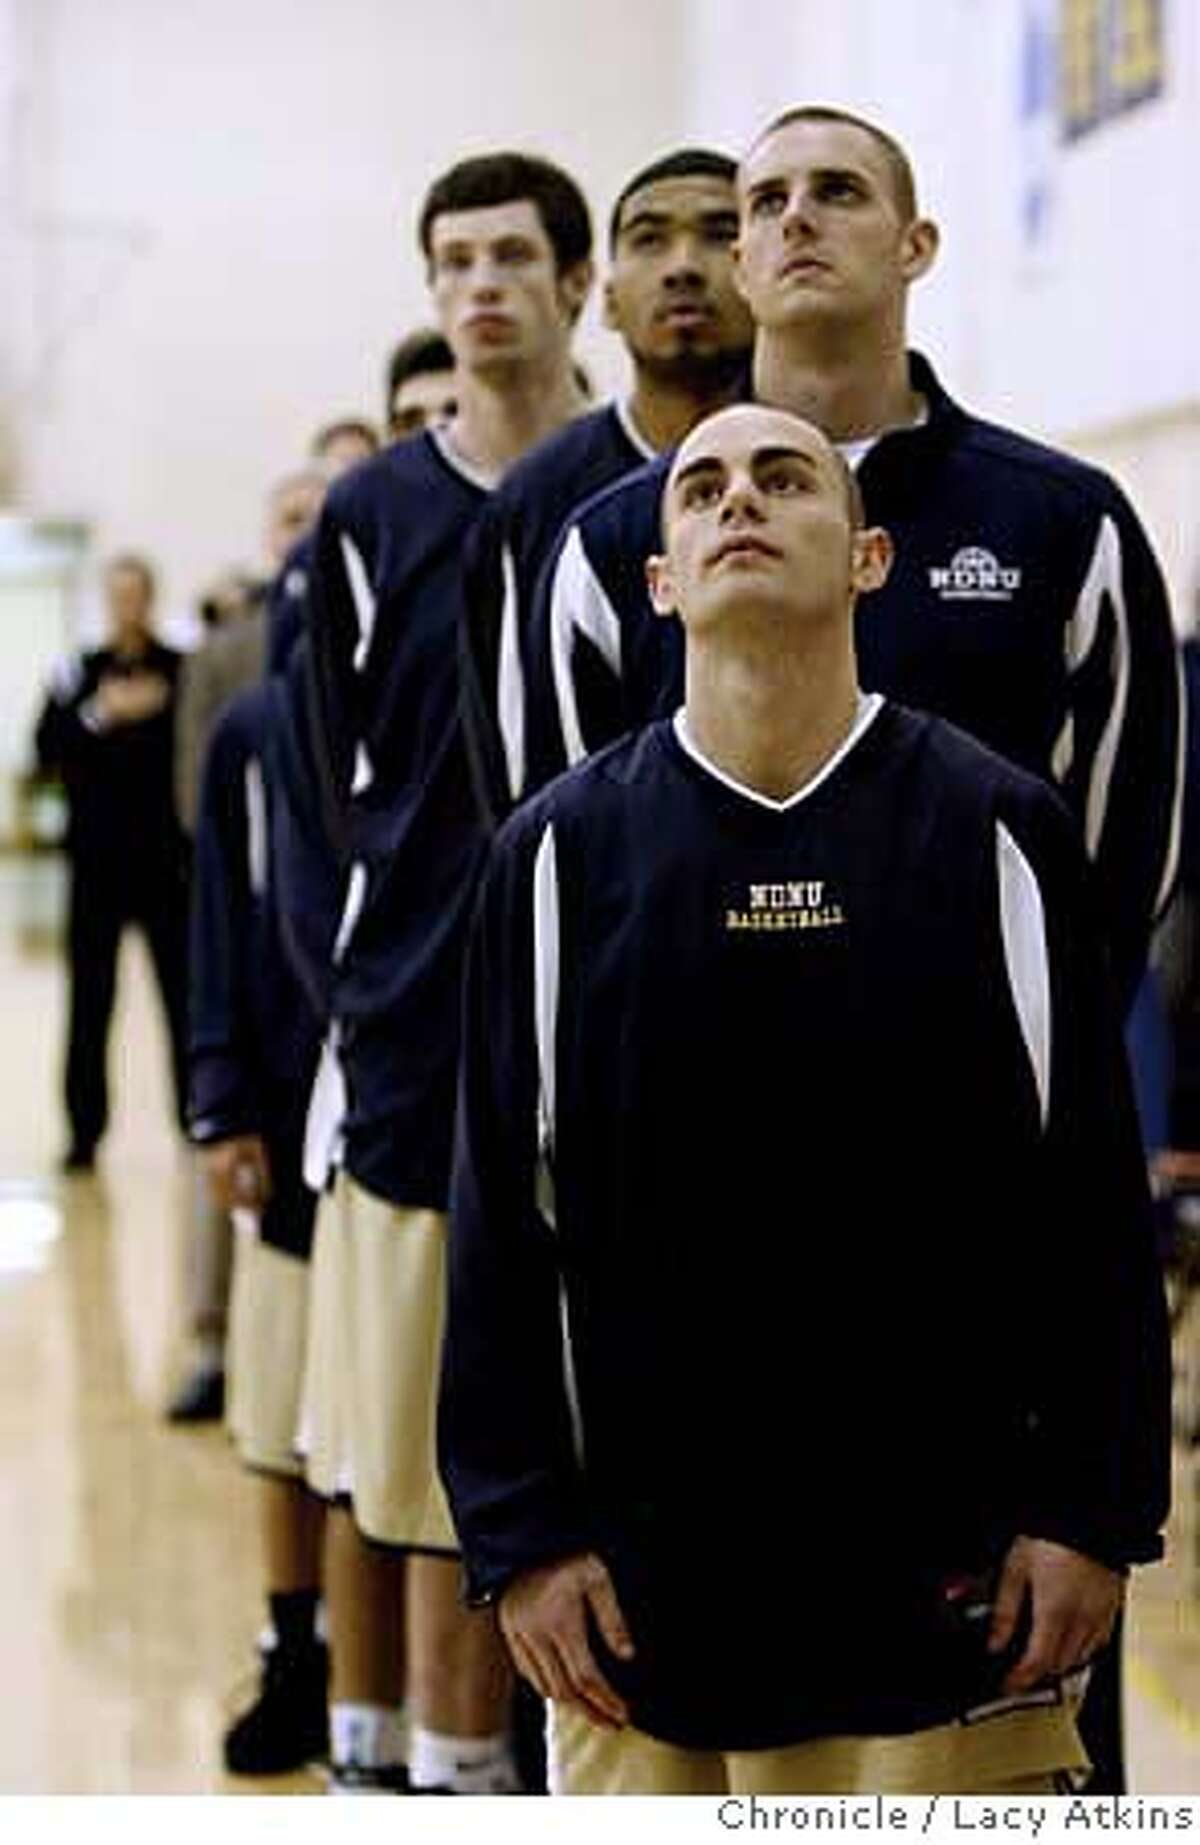 Ryan Copper a senior at Notre Dame stands with the team at the start of the game against BYU-Hawaii Wednesday night January 2, 2008, in Belmont,Ca. (Lacy Atkins San Francisco Chronicle) MANDATORY CREDIT FOR PHOTOG AND SAN FRANCISCO CHRONICLE/NO SALES-MAGS OUT